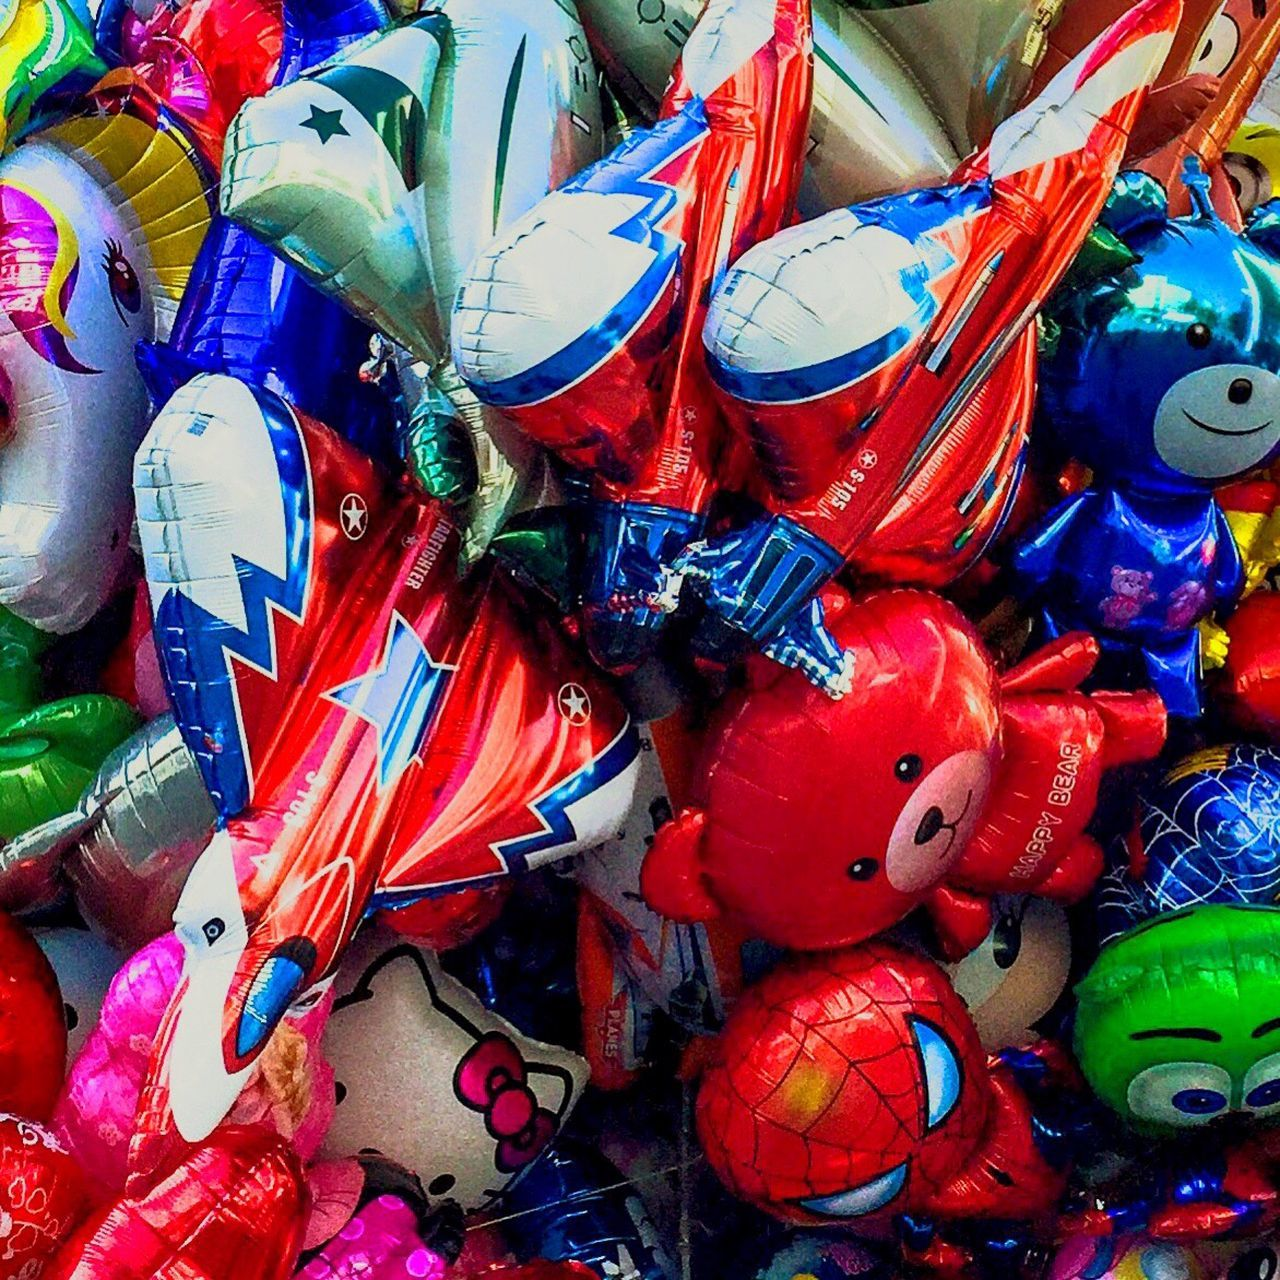 Ballons Backgrounds Full Frame Large Group Of Objects Abundance Multi Colored For Sale Retail  Retail Display Heap Red Outdoors Mask - Disguise Choice Day Vibrant Color No People Colorful